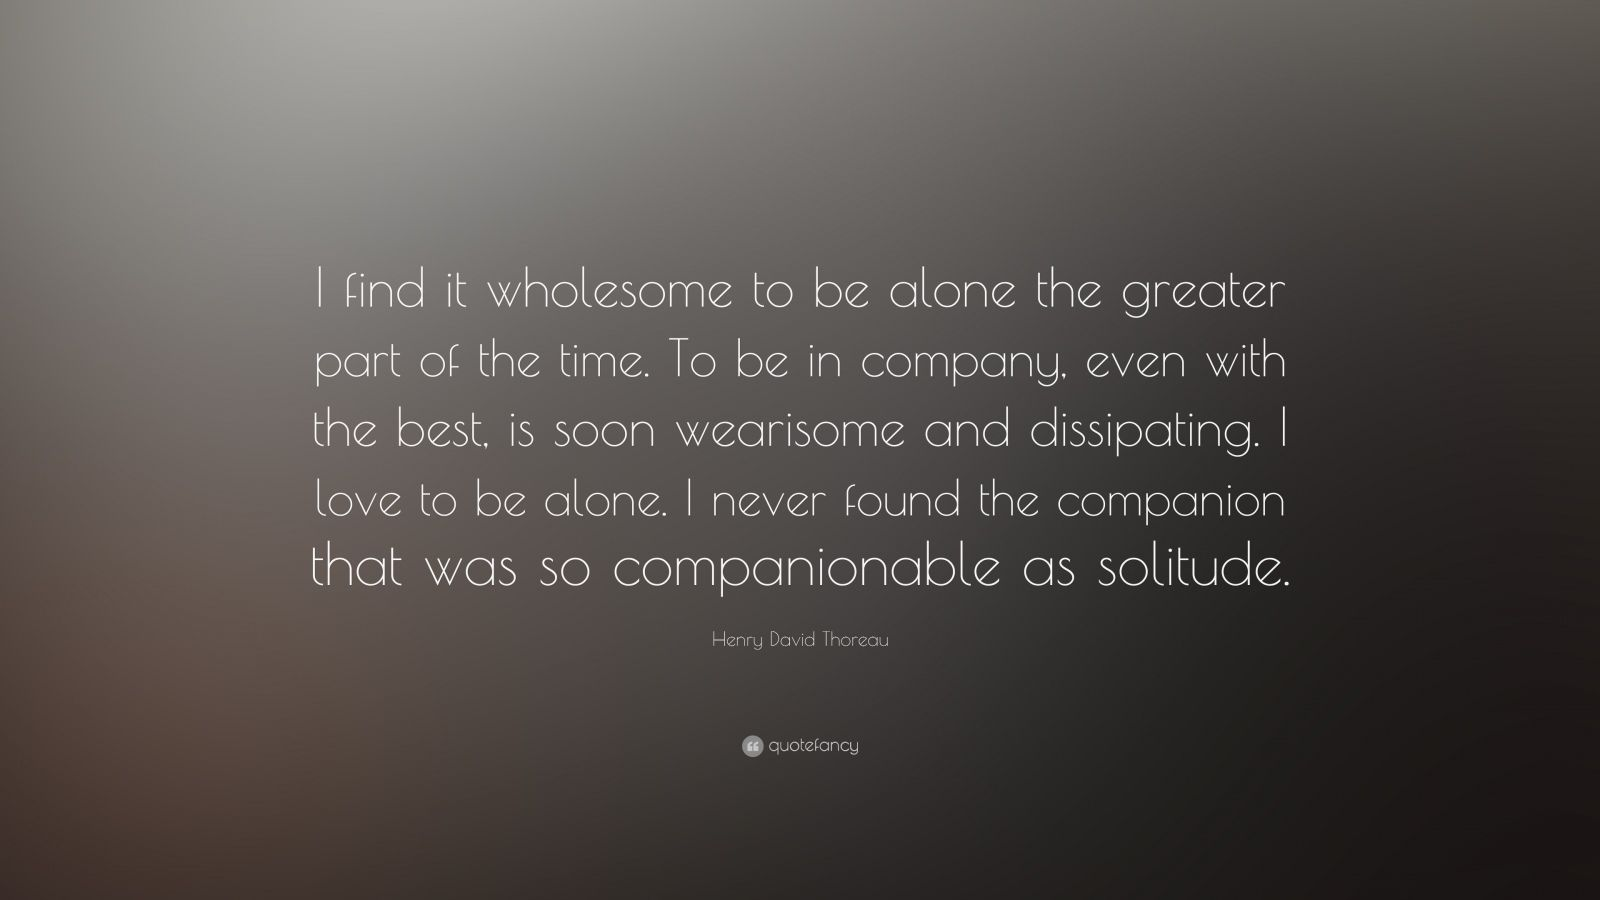 Wholesome Quote Wallpaper Henry David Thoreau Quote I Find It Wholesome To Be